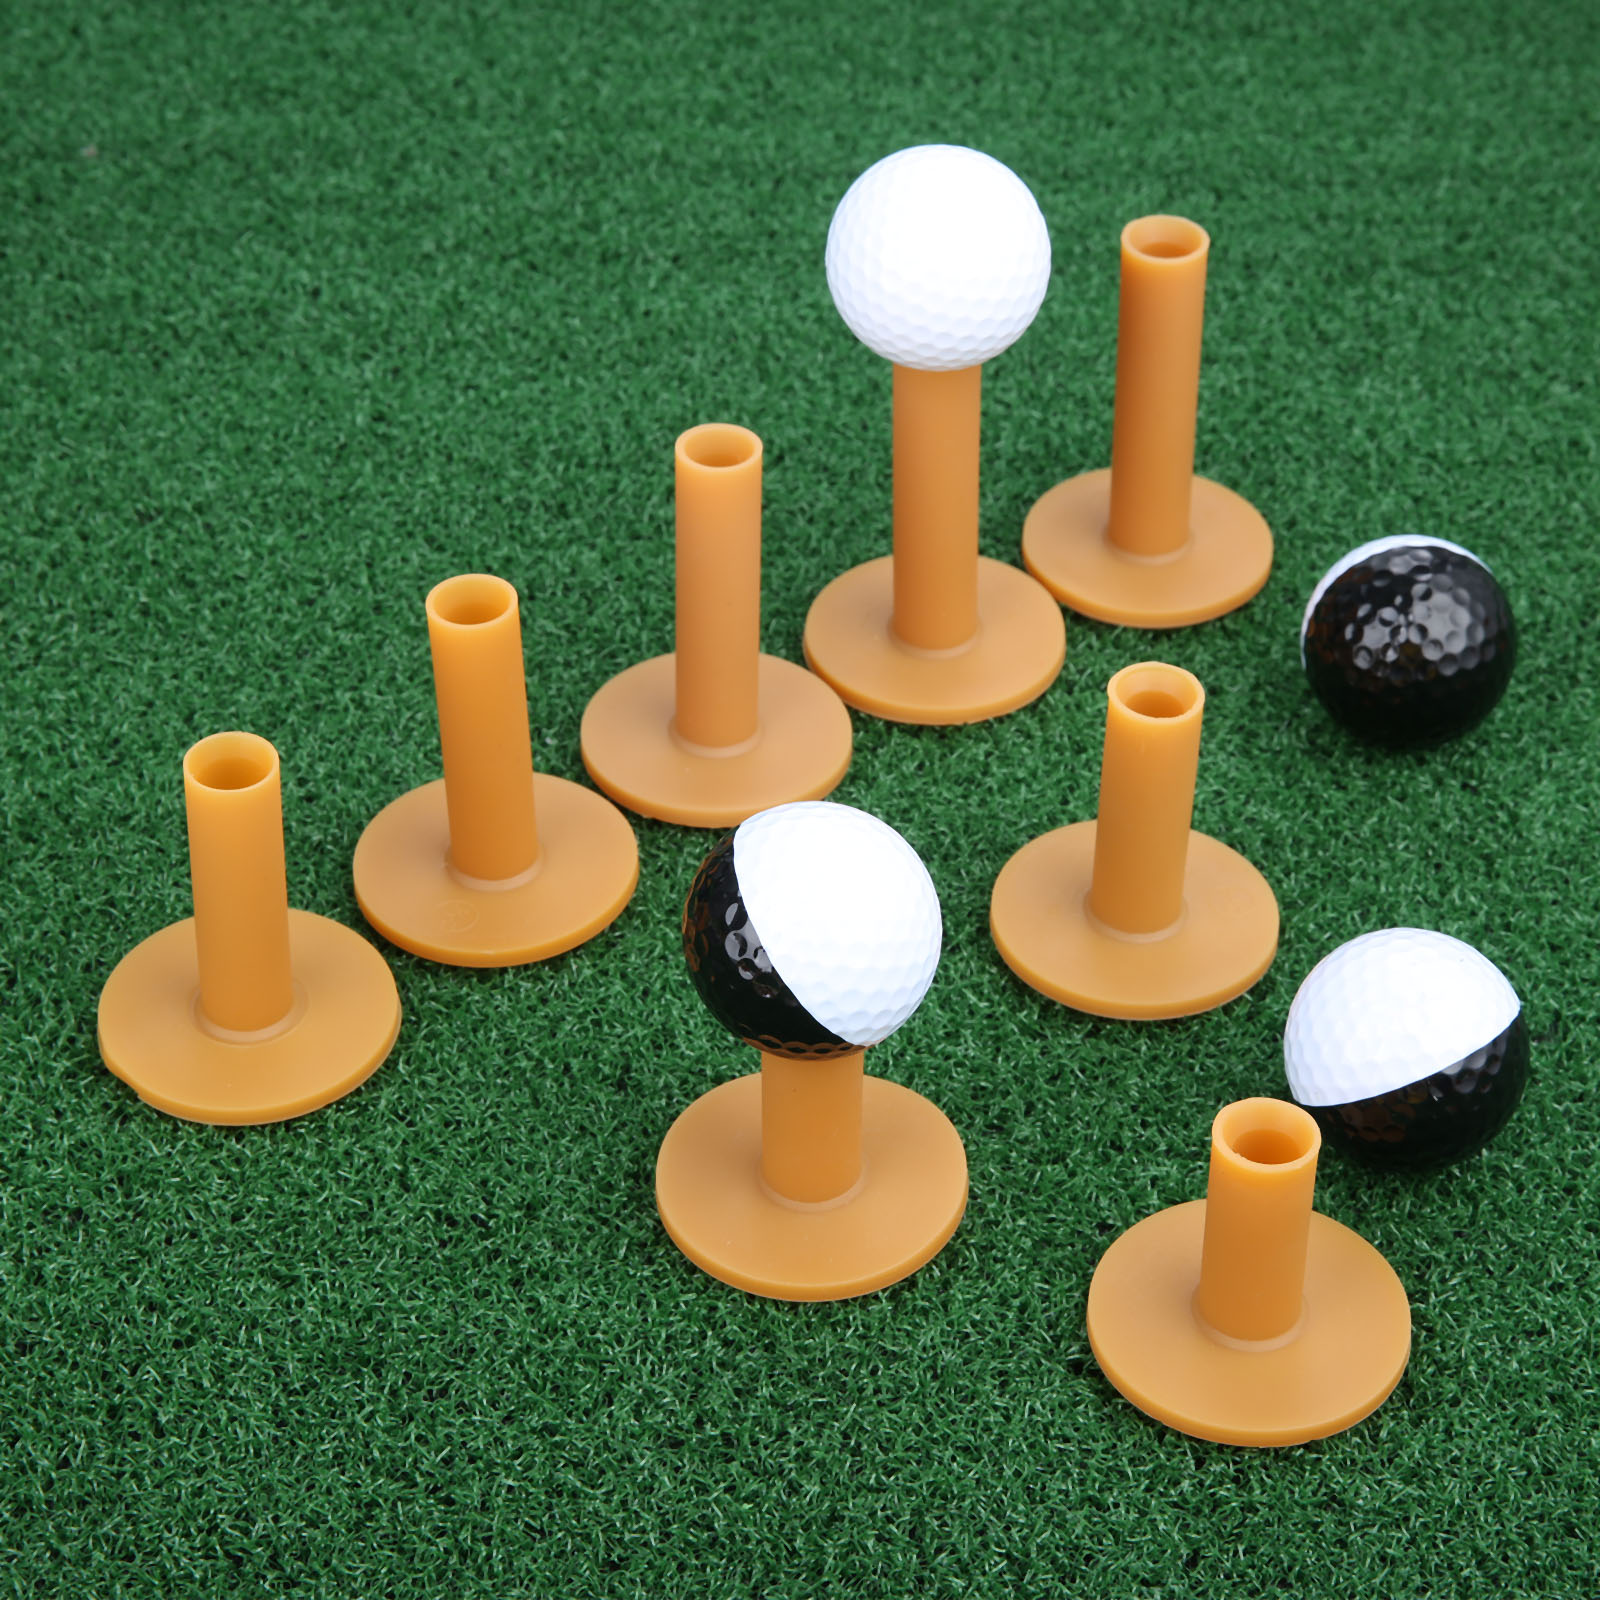 3 Pcs Golf Rubber Tees Golf Ball Holder Beginner Practice Tees Easy To Use On Hard Ground/ Winter Tees 35/45/55/60/65/70/75/80mm